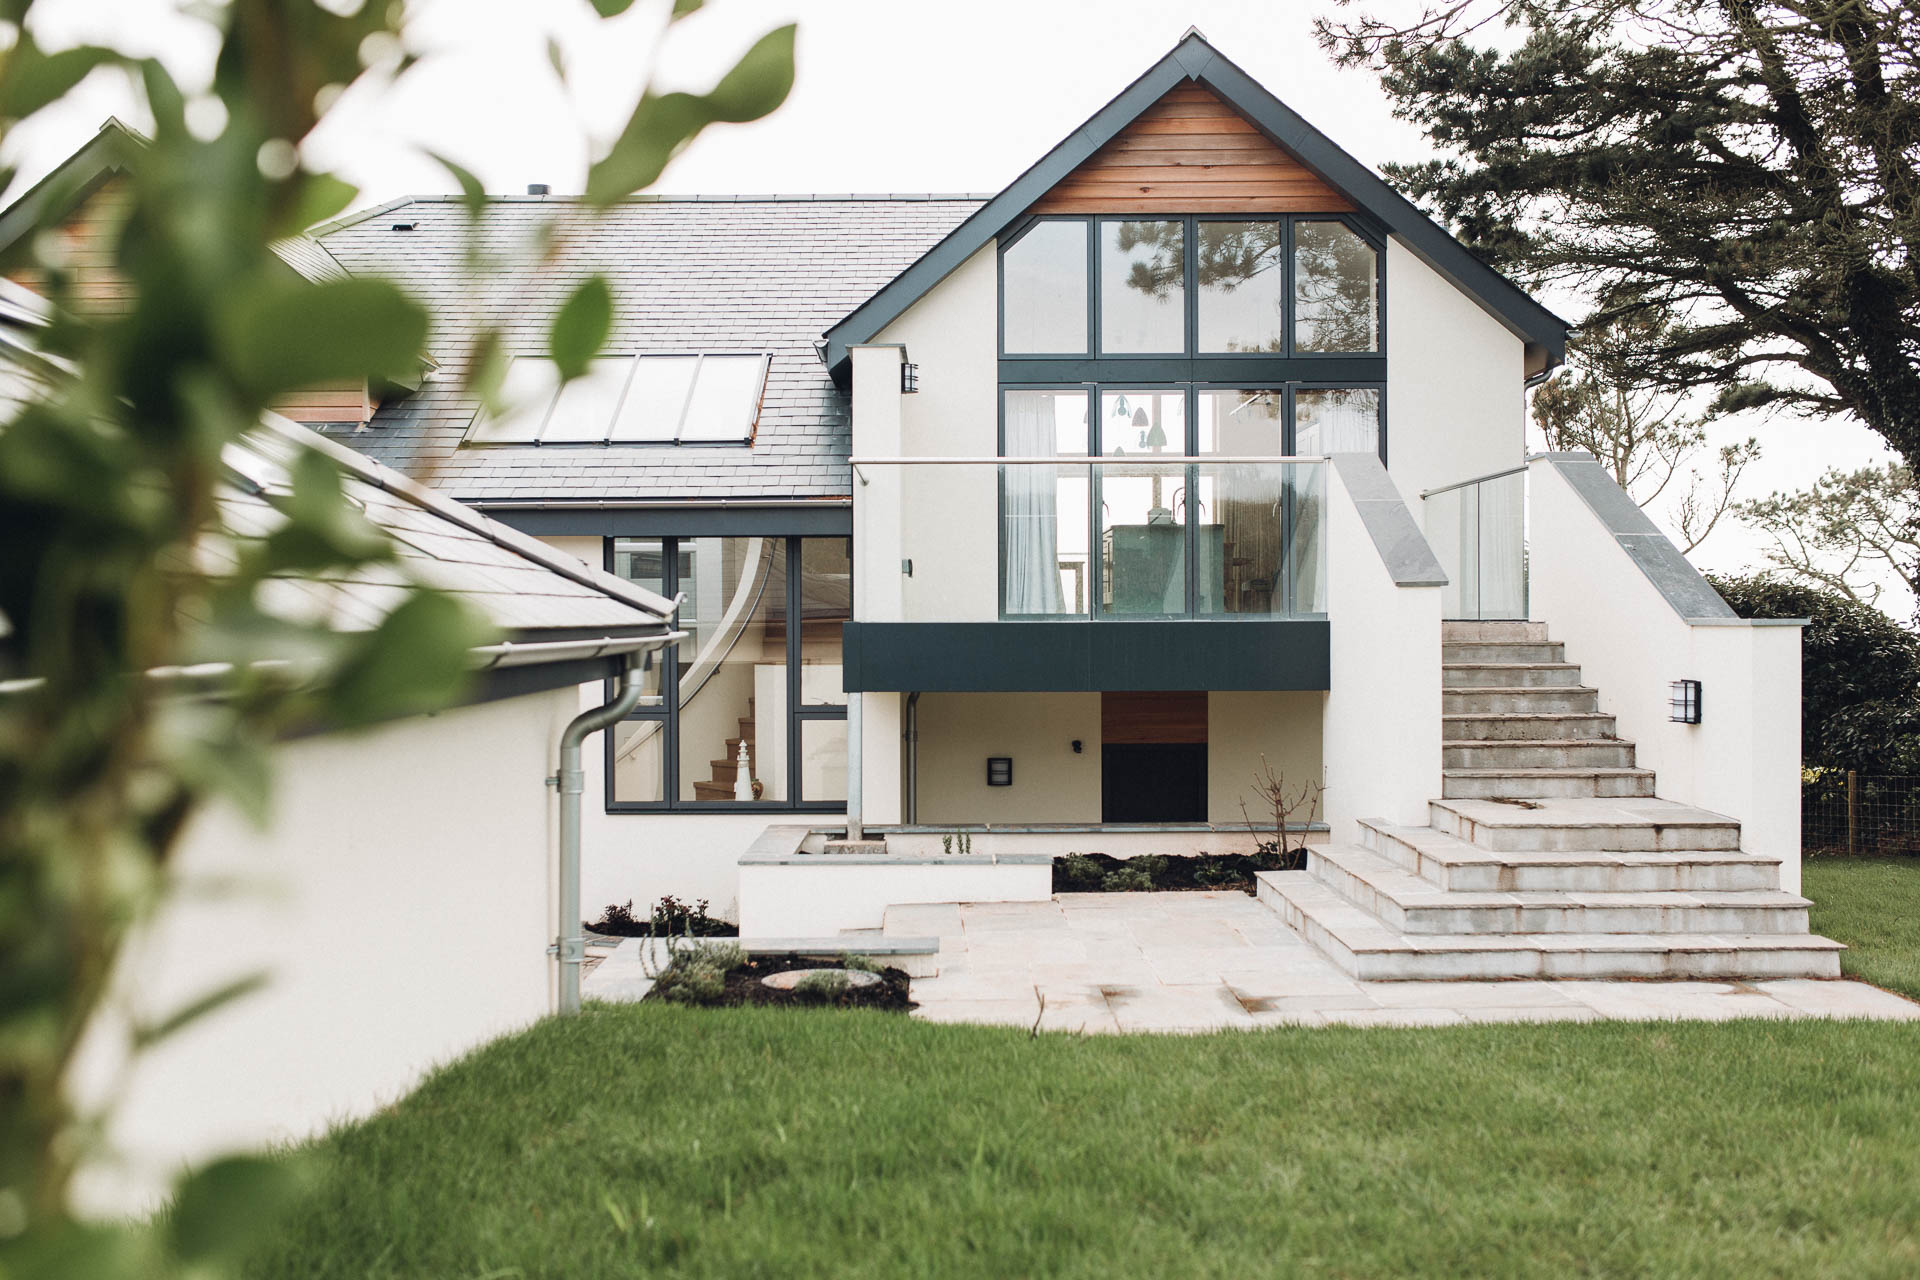 ideal combi windows and frameless glass balcony to a modern thurlestone beach house by devon architects andrew lethbridge associates